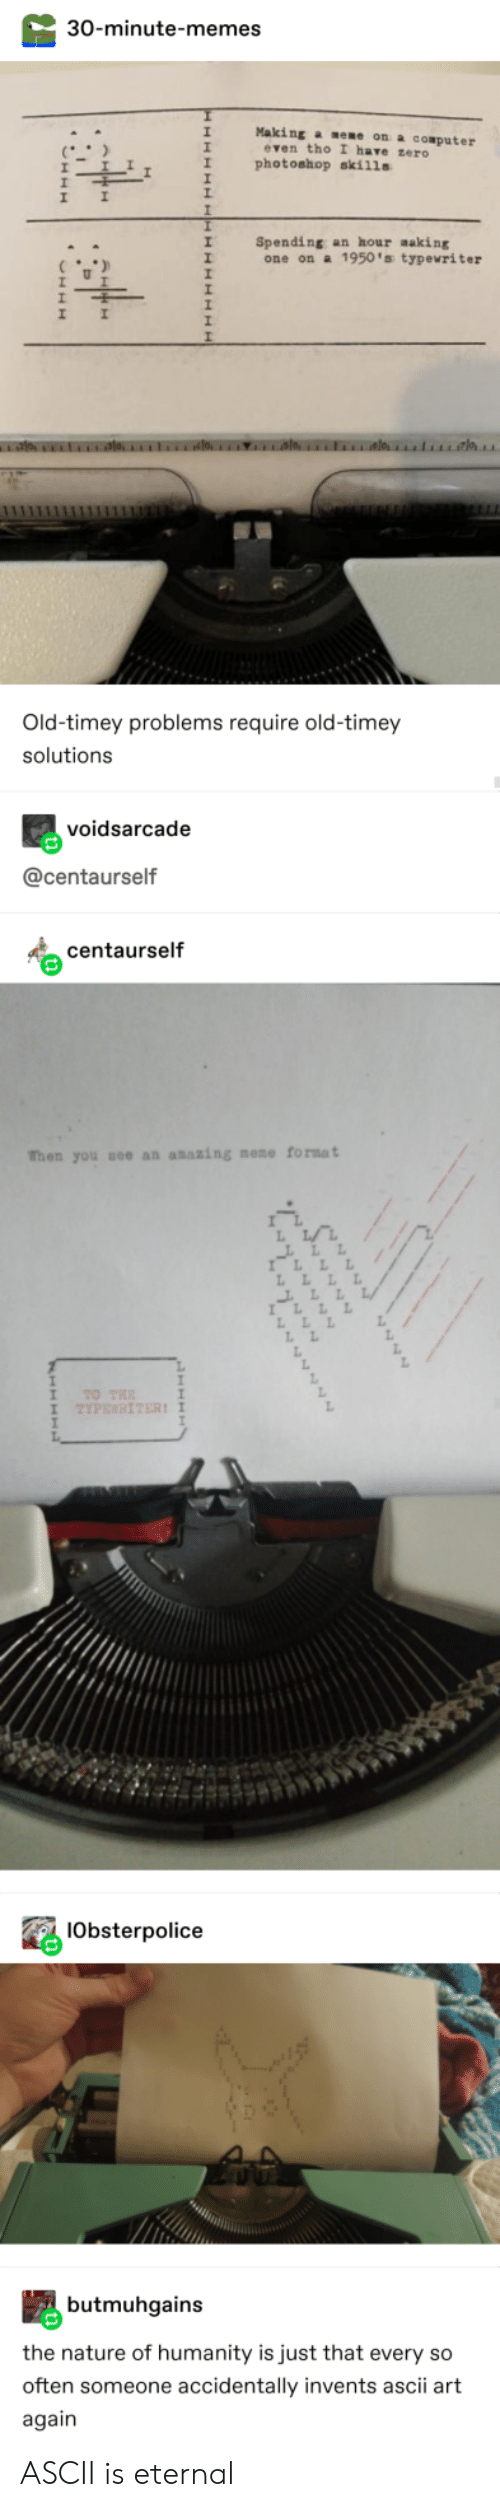 1950S: 30-minute-memes  Making a eme on a cOmputer  even tho I have zero  photoshop skills  Spending an hour making  one on a 1950's typewriter  Old-timey problems require old-timey  solutions  voidsarcade  @centaurself  centaurself  When you see an asazing mome format  TO THE  TYPENRITER!  IObsterpolice  butmuhgains  the nature of humanity is just that every so  often someone accidentally invents ascii art  again  CHAR  9999594  www ASCII is eternal